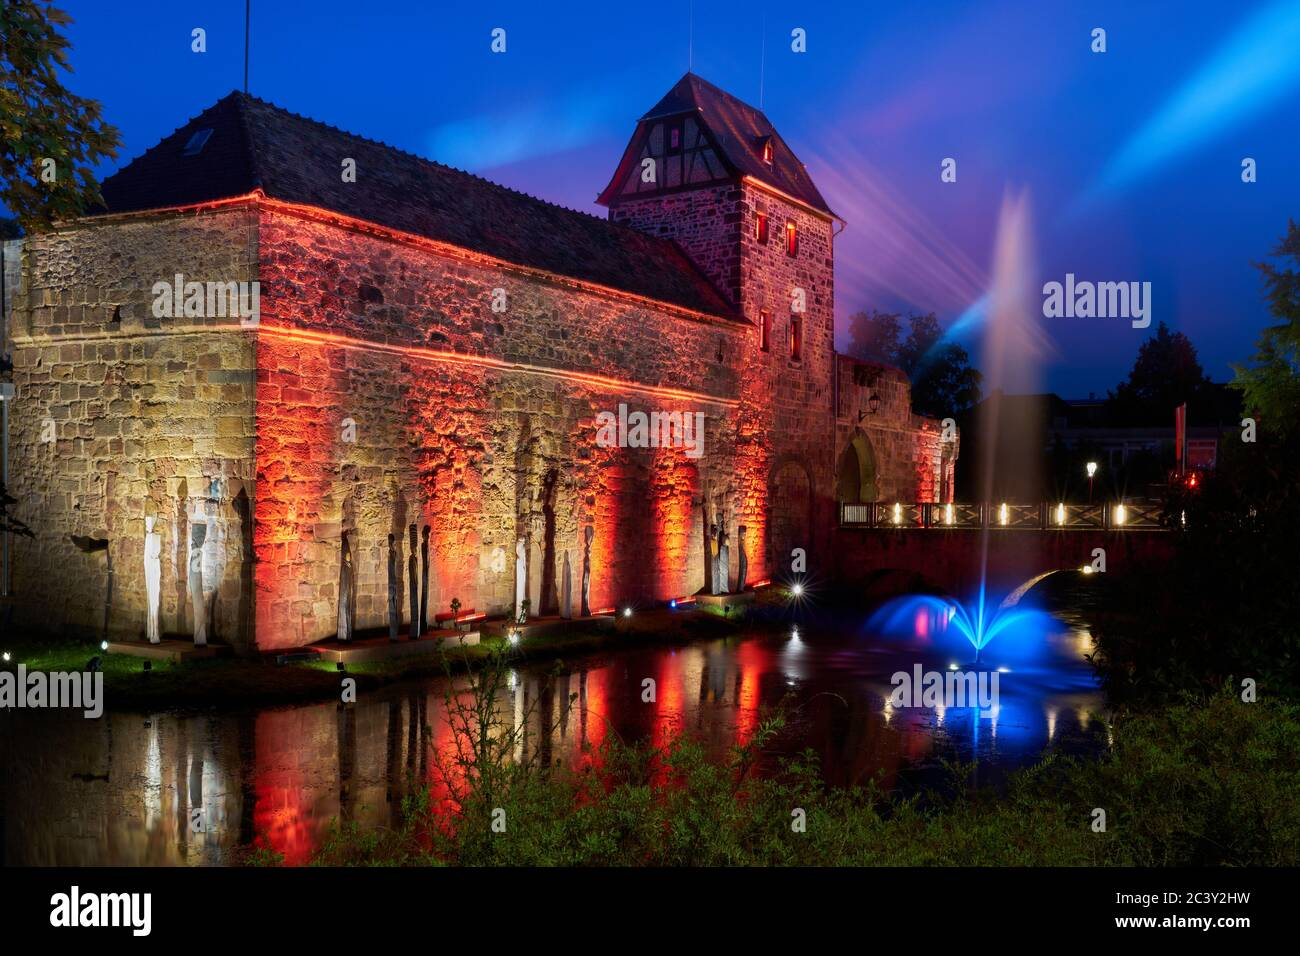 The Bad Vilbel castle at night Stock Photo